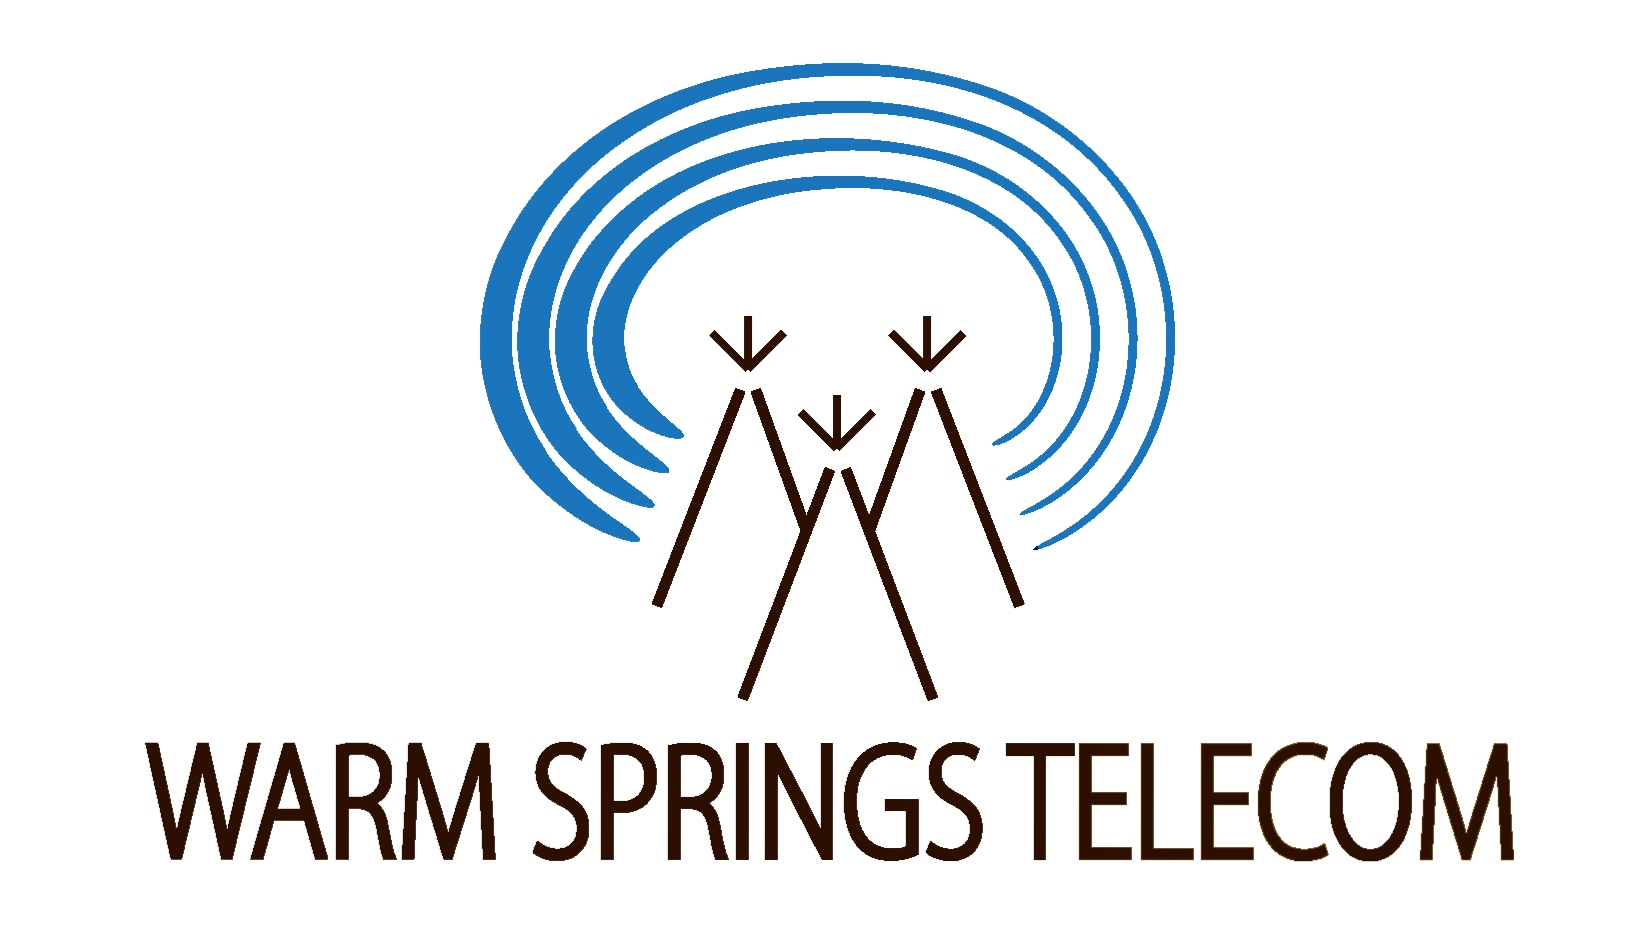 Warm Springs Telecommunications Company logo